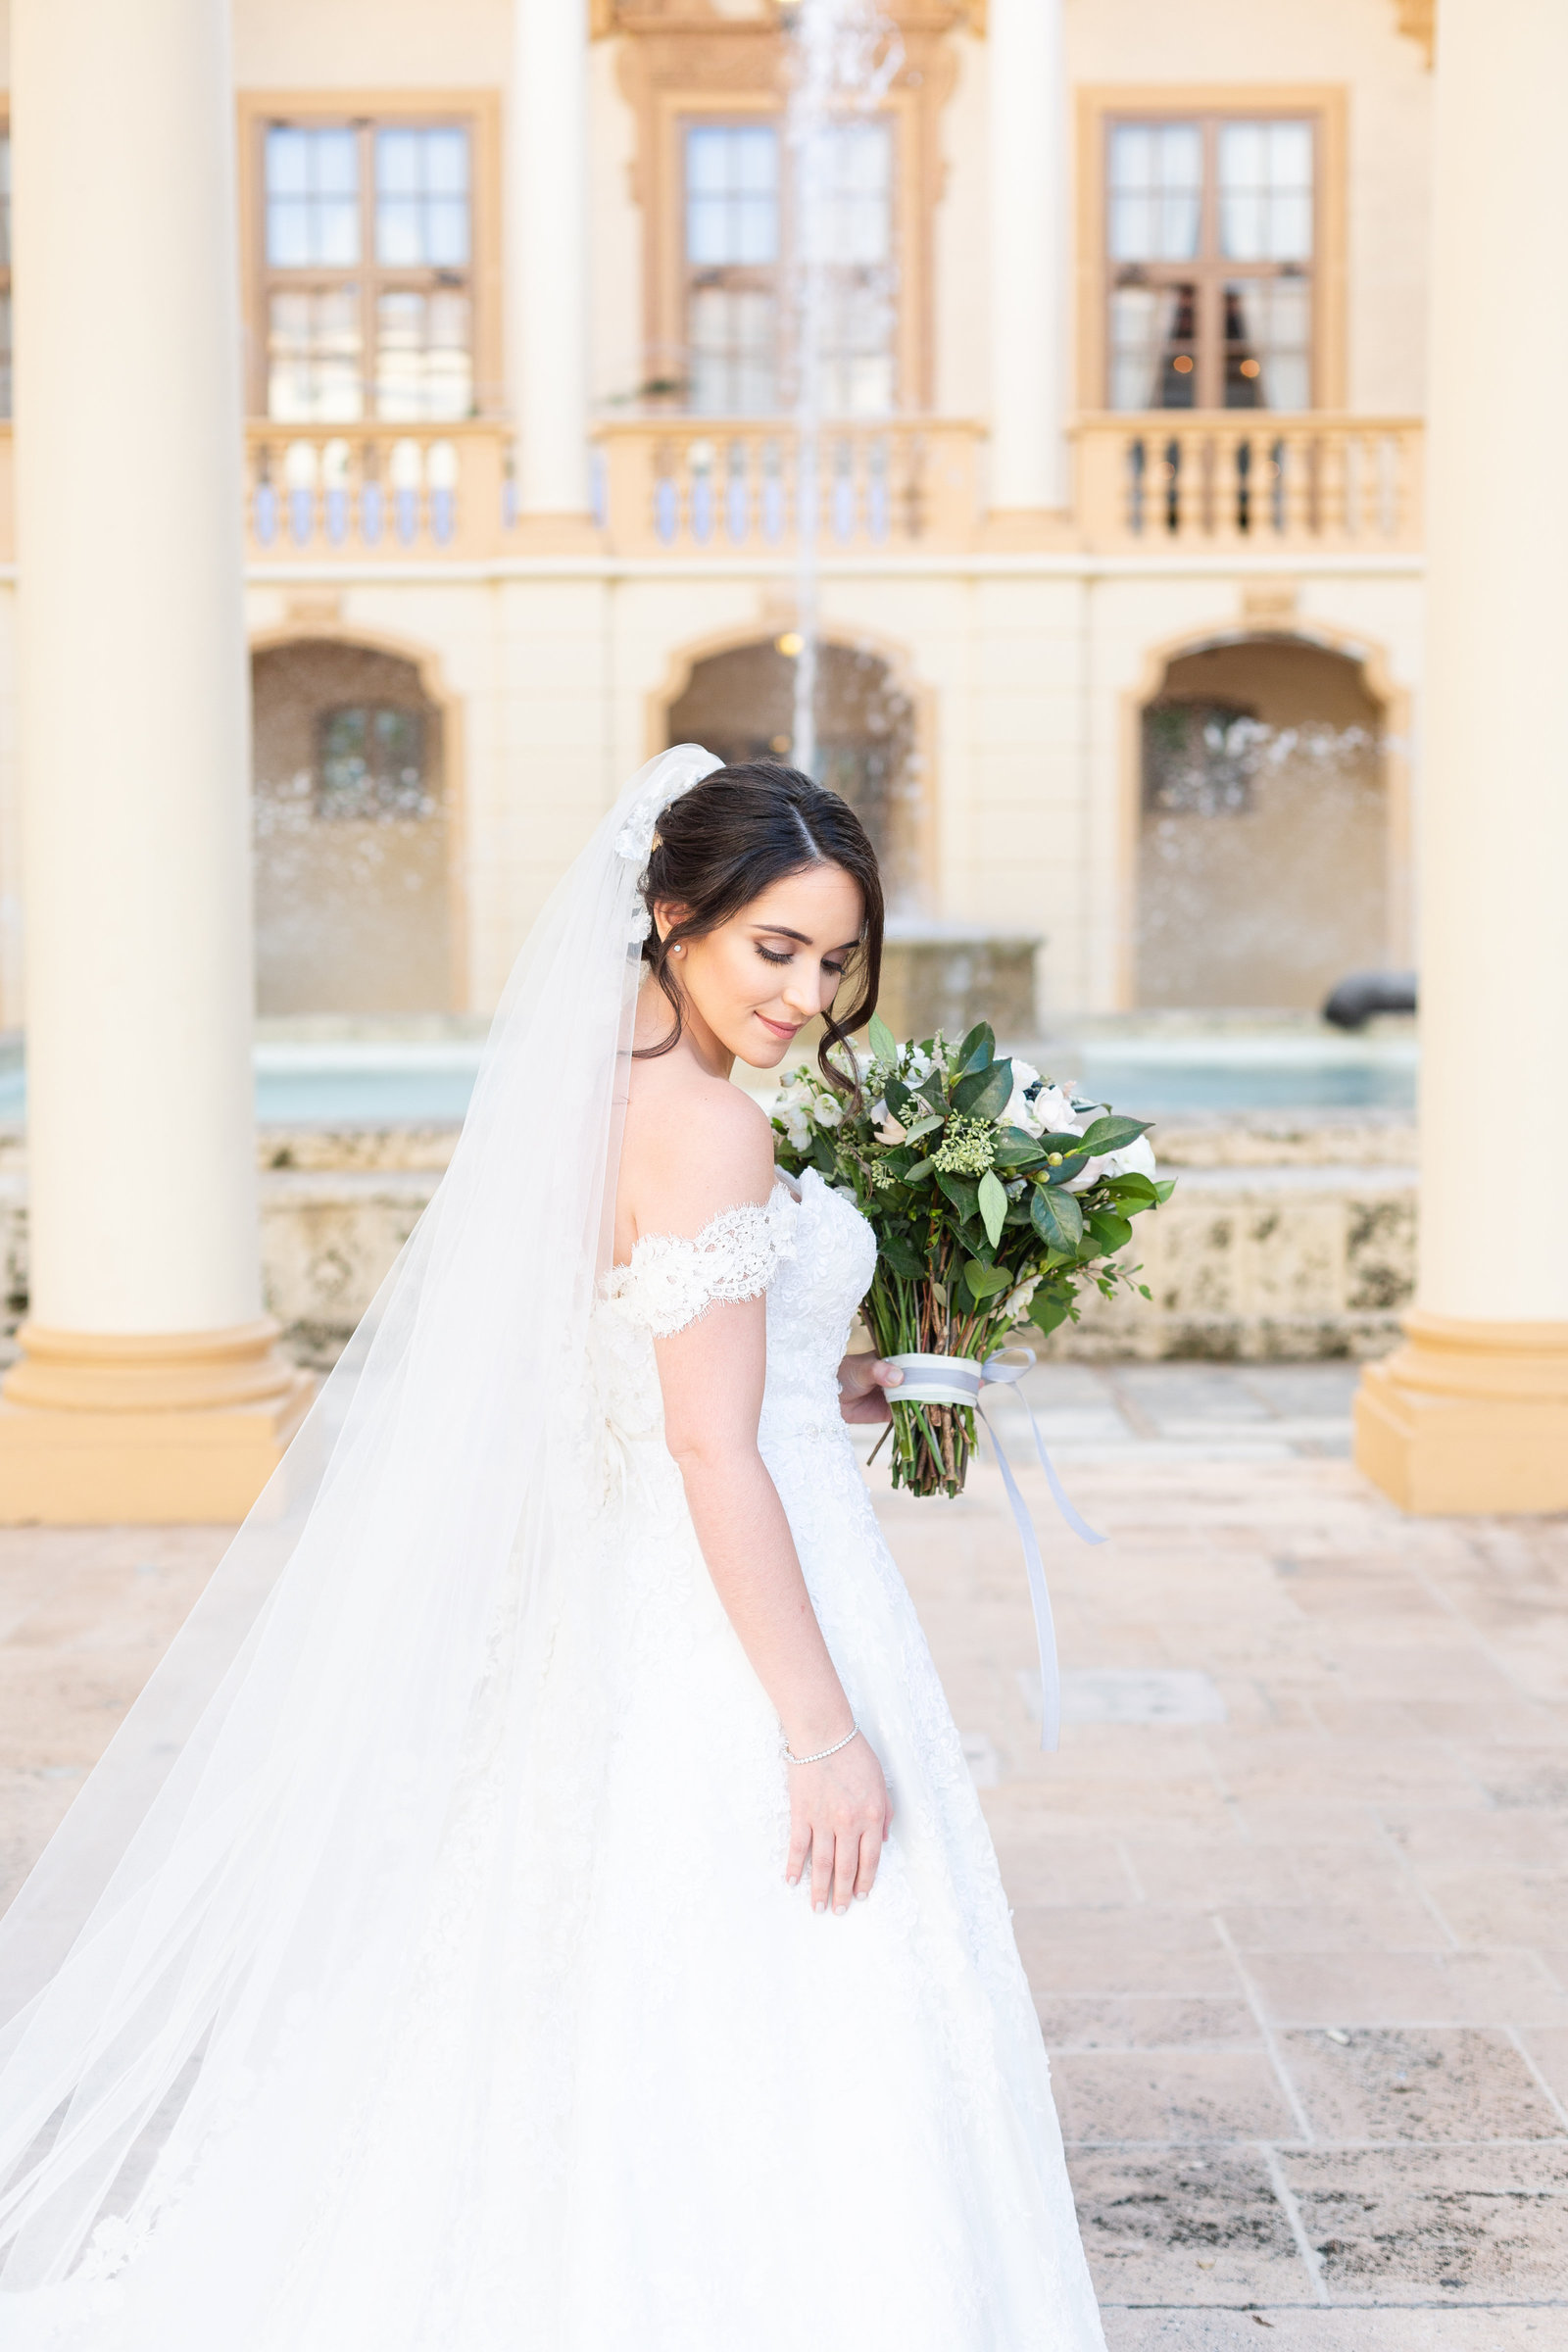 Biltmore-hotel-Miami-Florida-bride-wedding-dress-fountain-flowers-chris-and-micaela-photography-